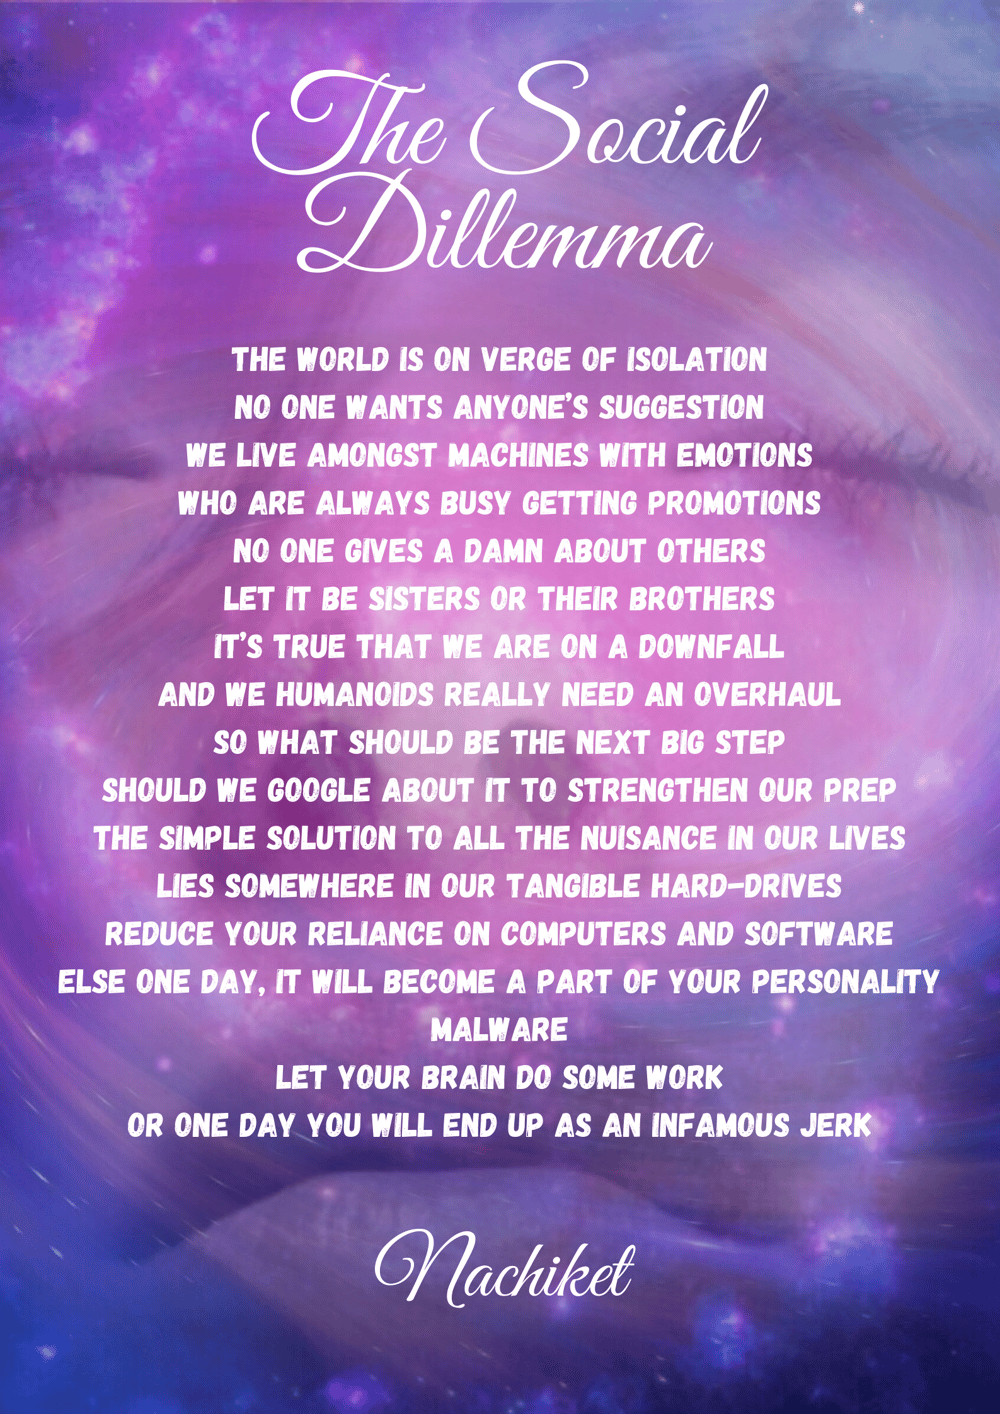 The Social Dilemma - image 1 - student project